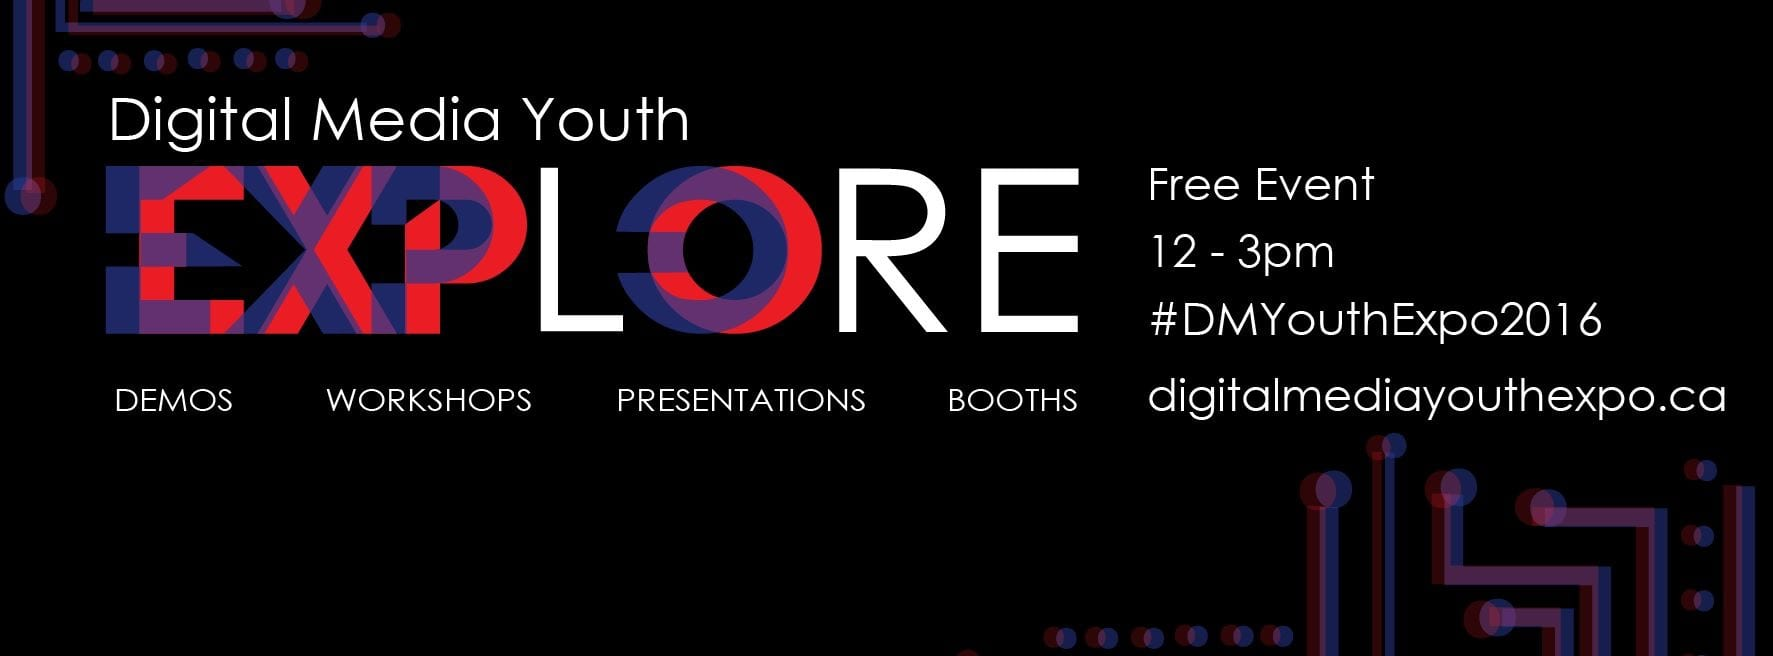 Digital Media Youth Expo 2016